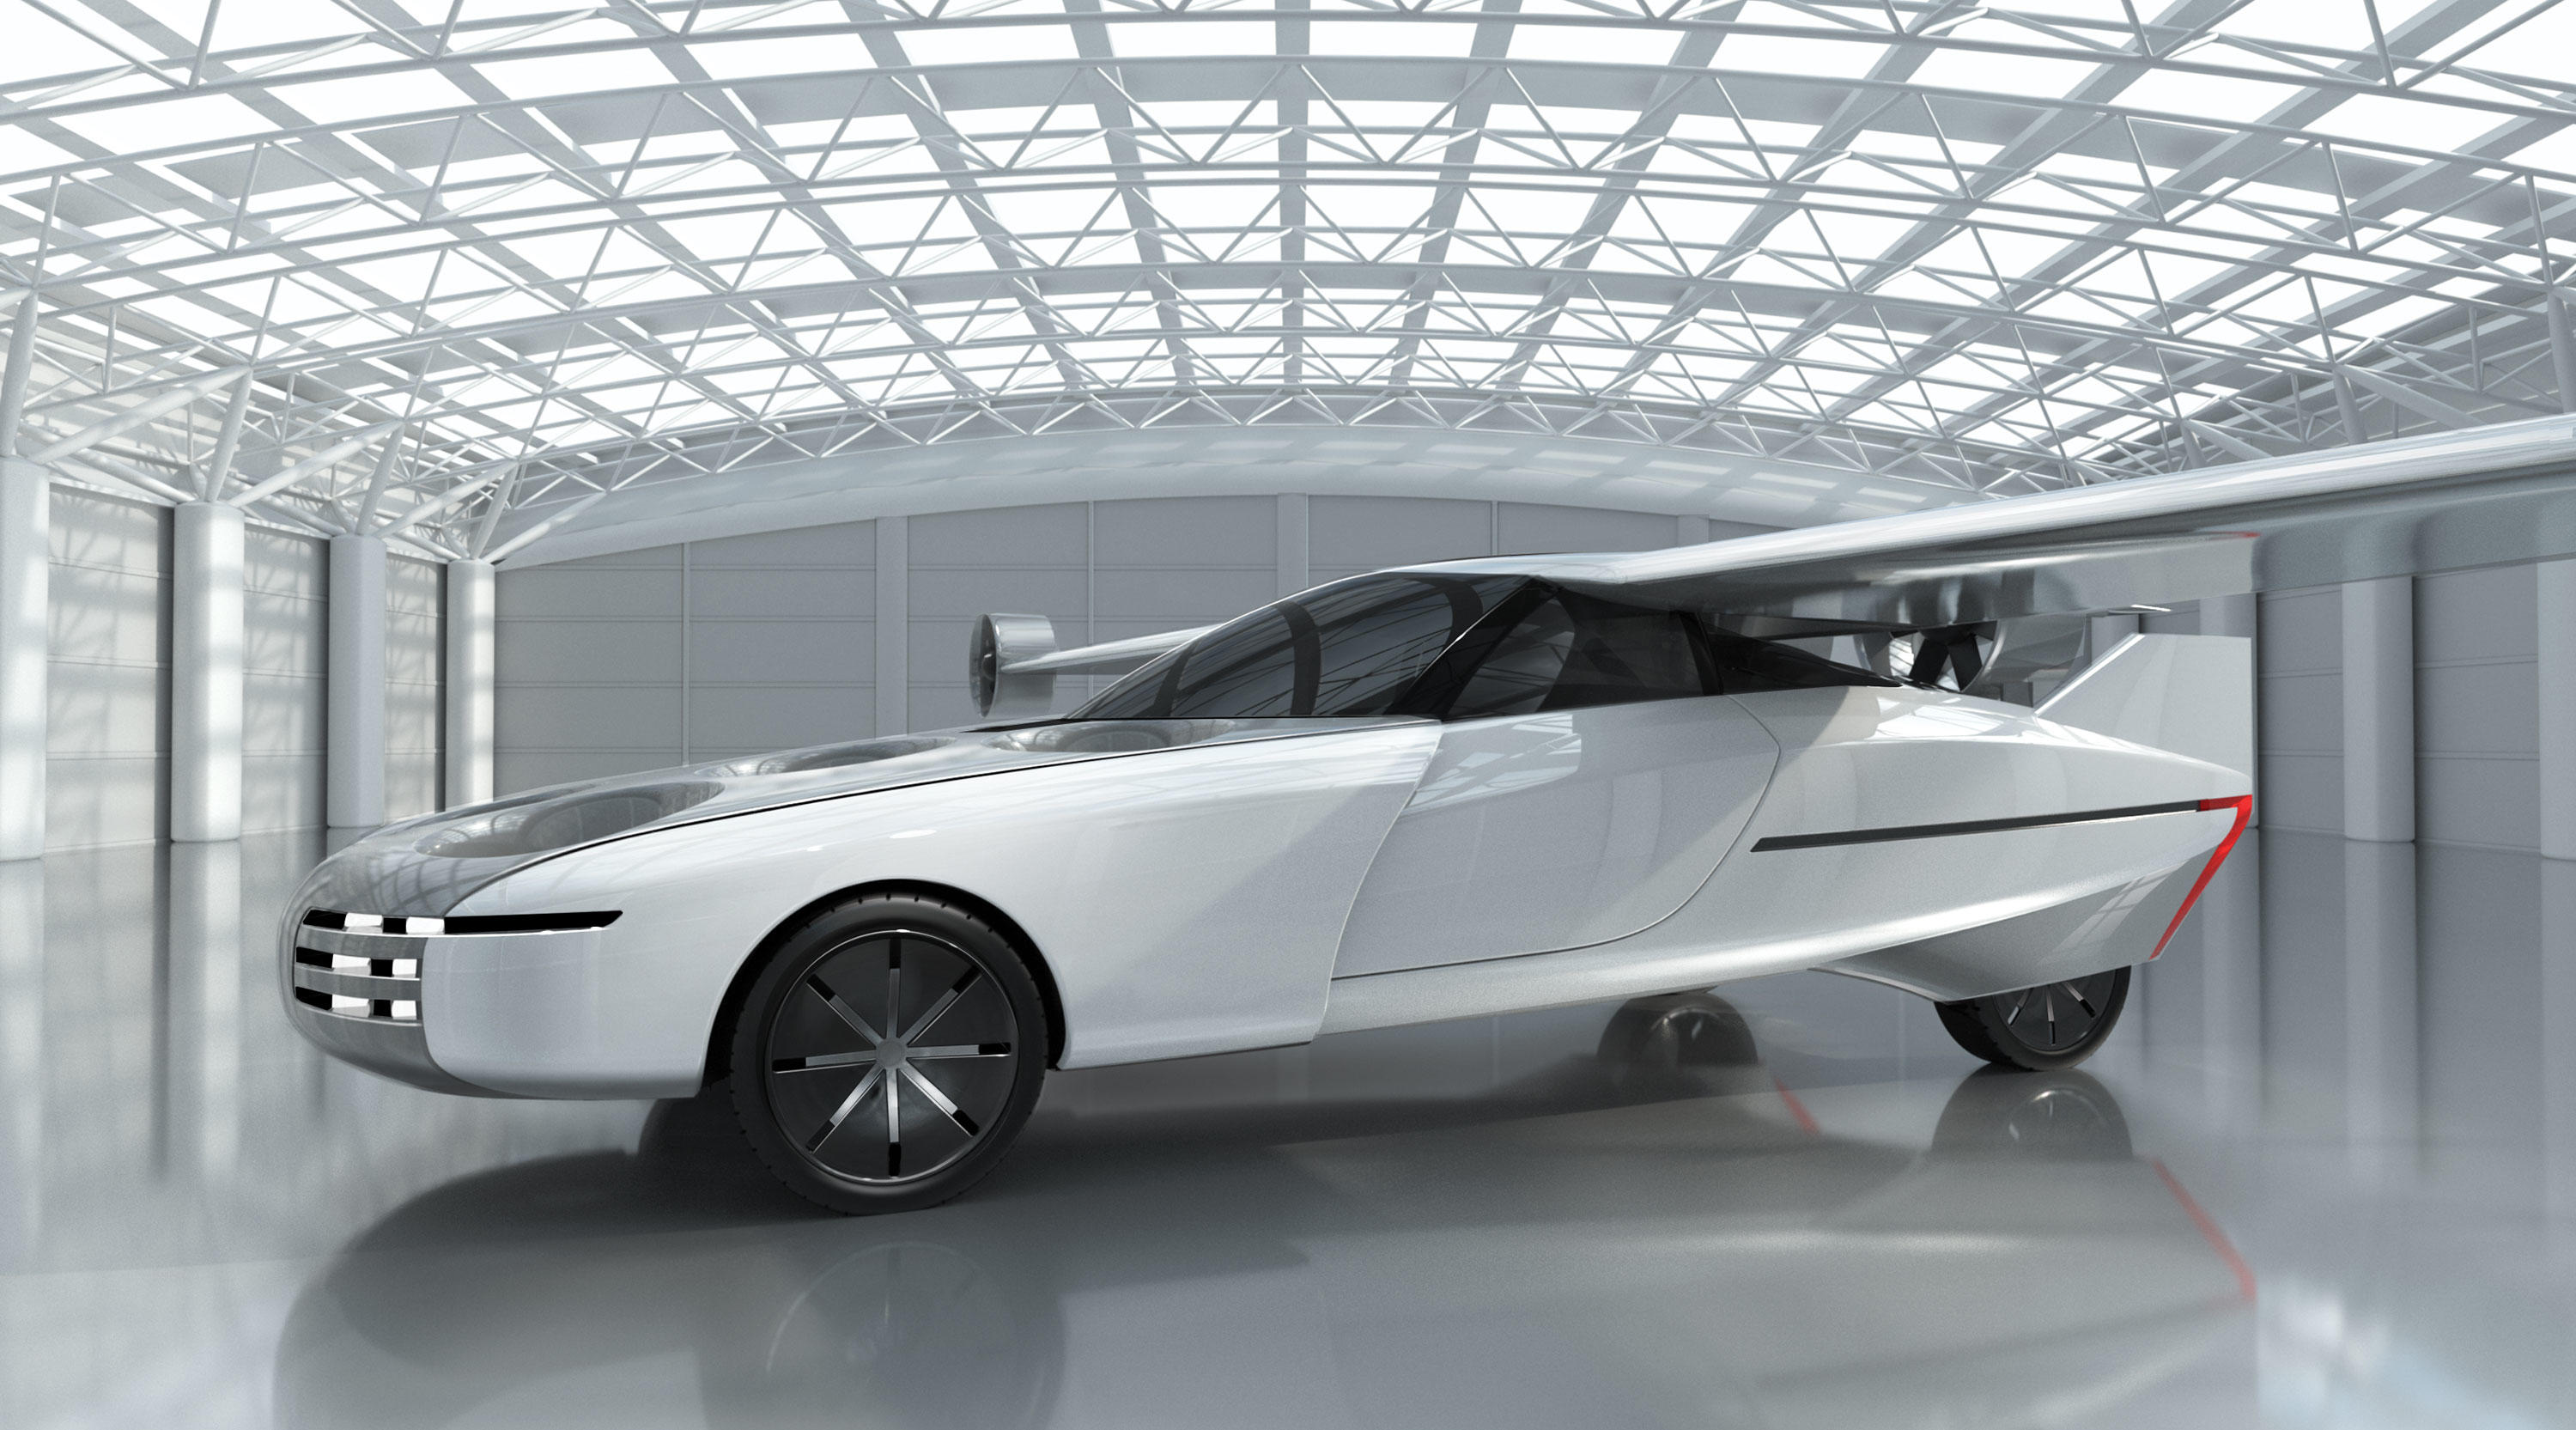 NFT's Aska flying car is designed to drive on the road then fly one to three passengers up to 150 miles.